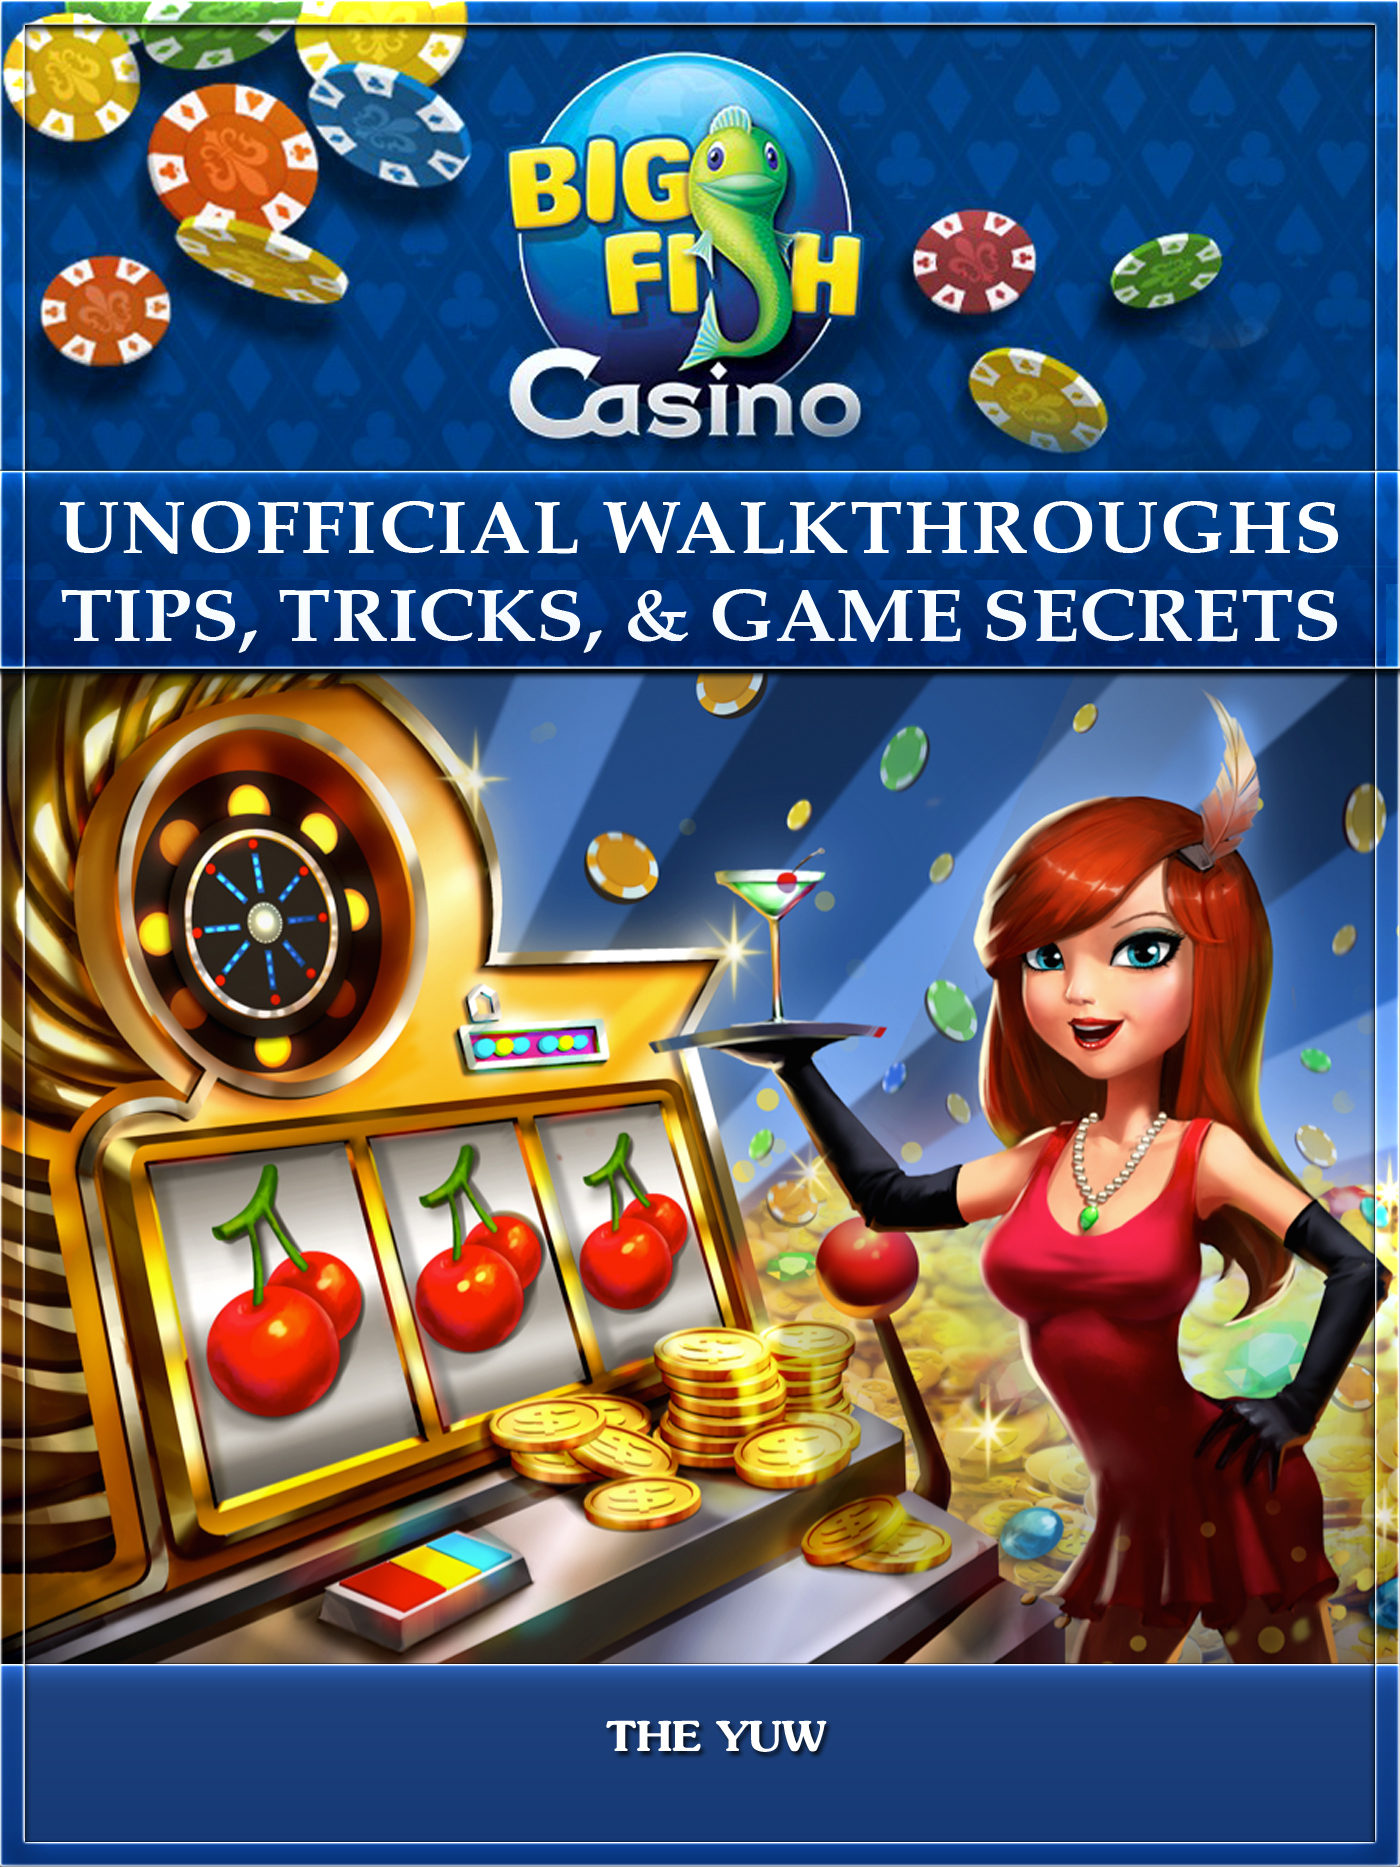 Big Fish Libro Big Fish Casino Unofficial Walkthroughs Tips Tricks Game